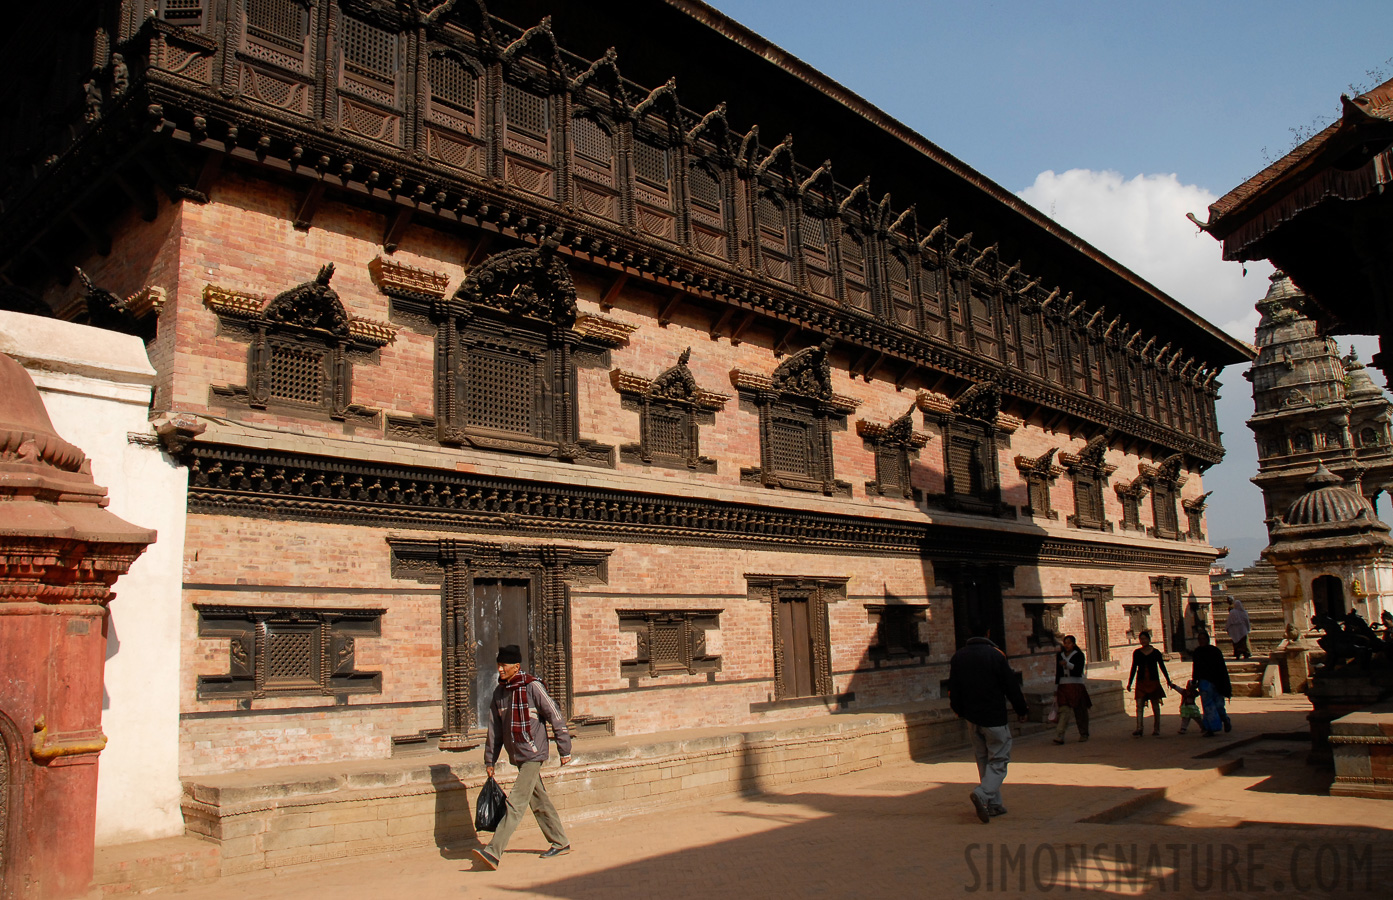 Bhaktapur [18 mm, 1/500 sec at f / 11, ISO 400]